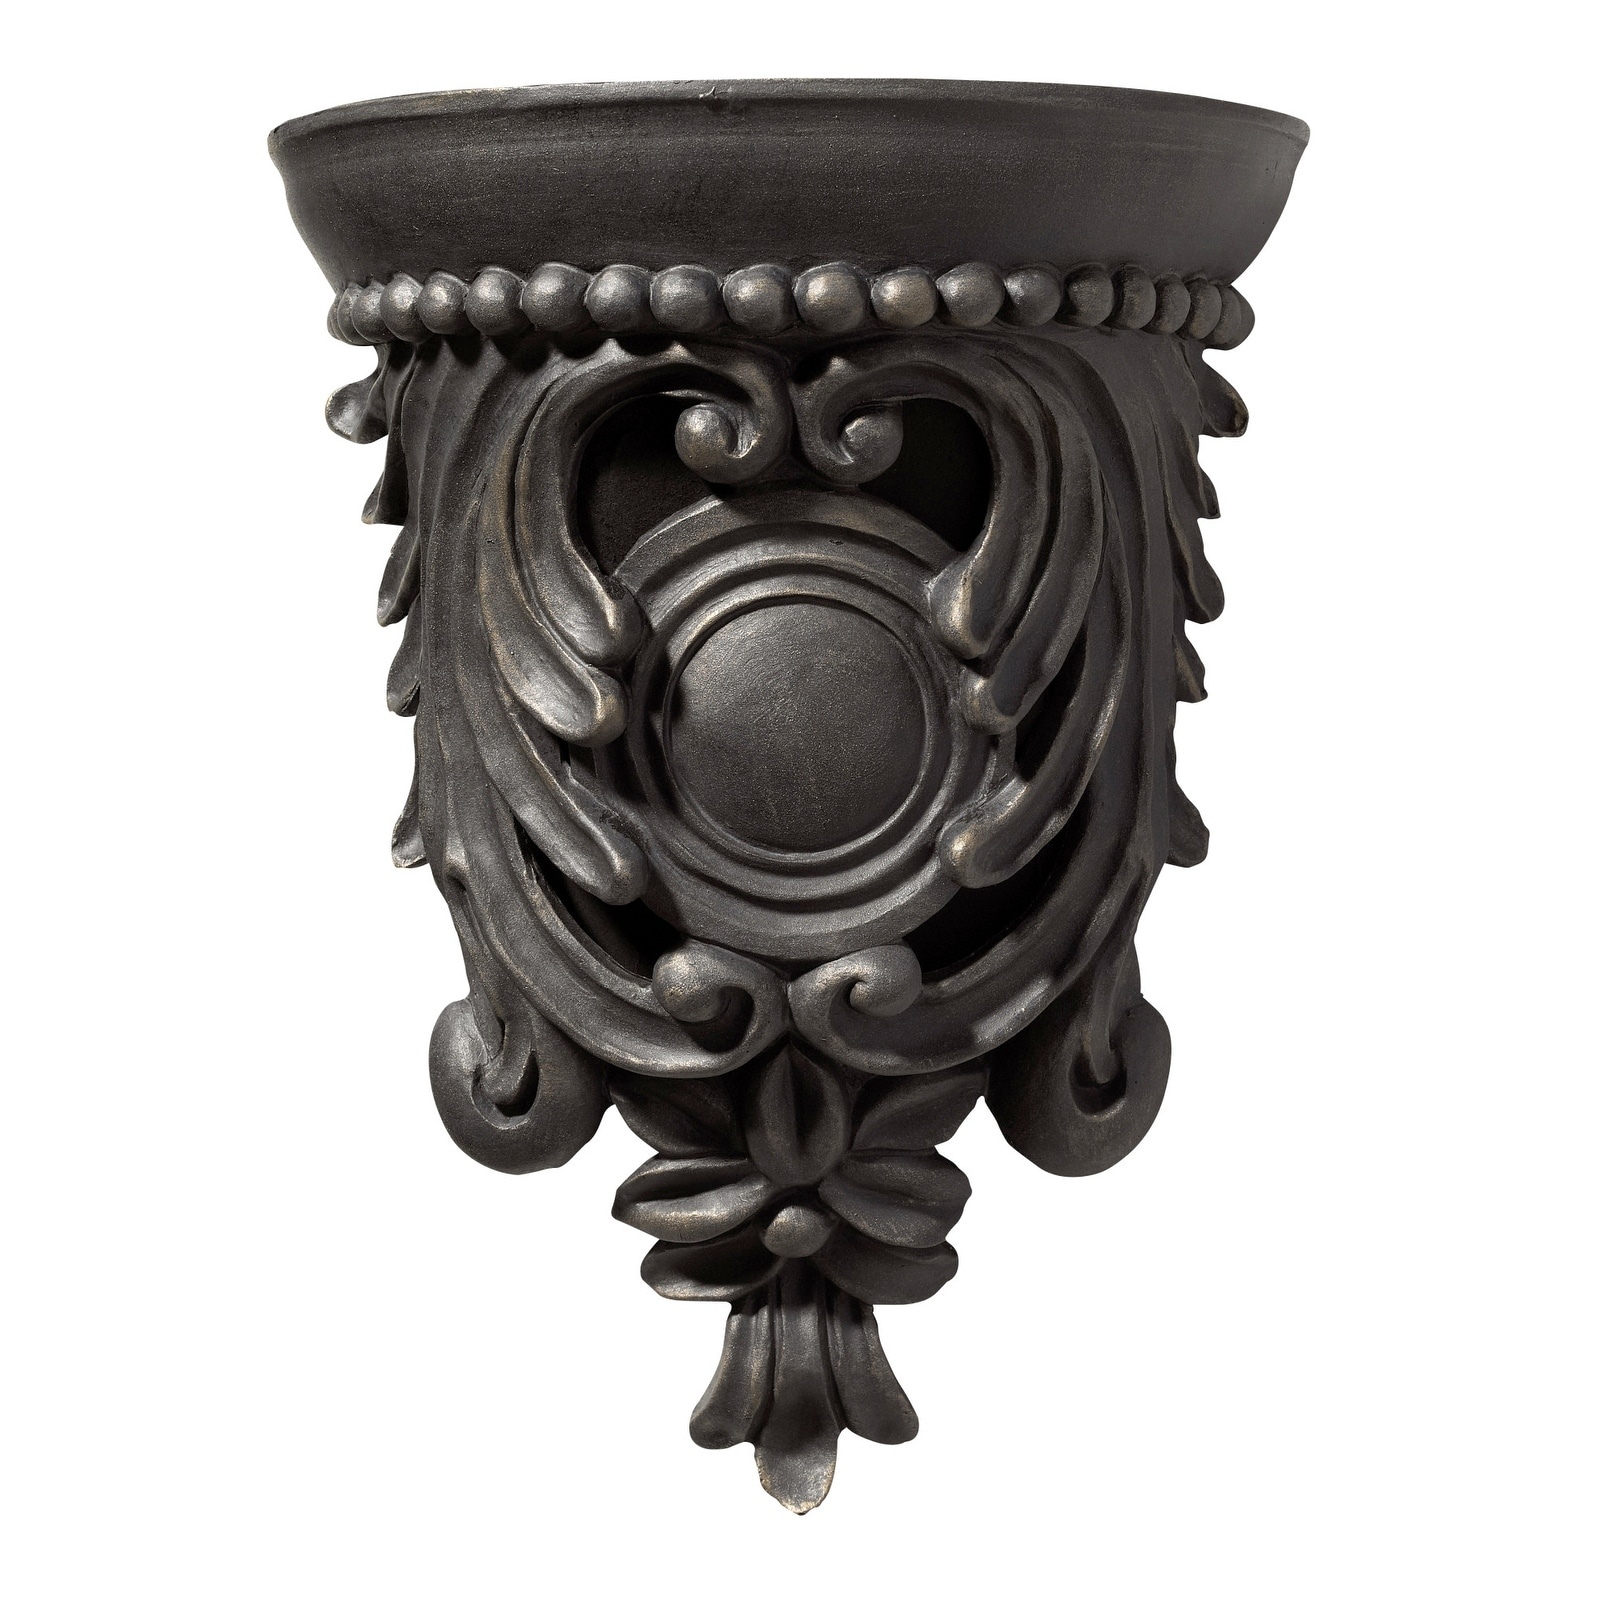 Craftmade CAC  Corbel Design Decorative Wall Sconce Chime from the Traditional Collection - Hand-Painted Florentine Bronze